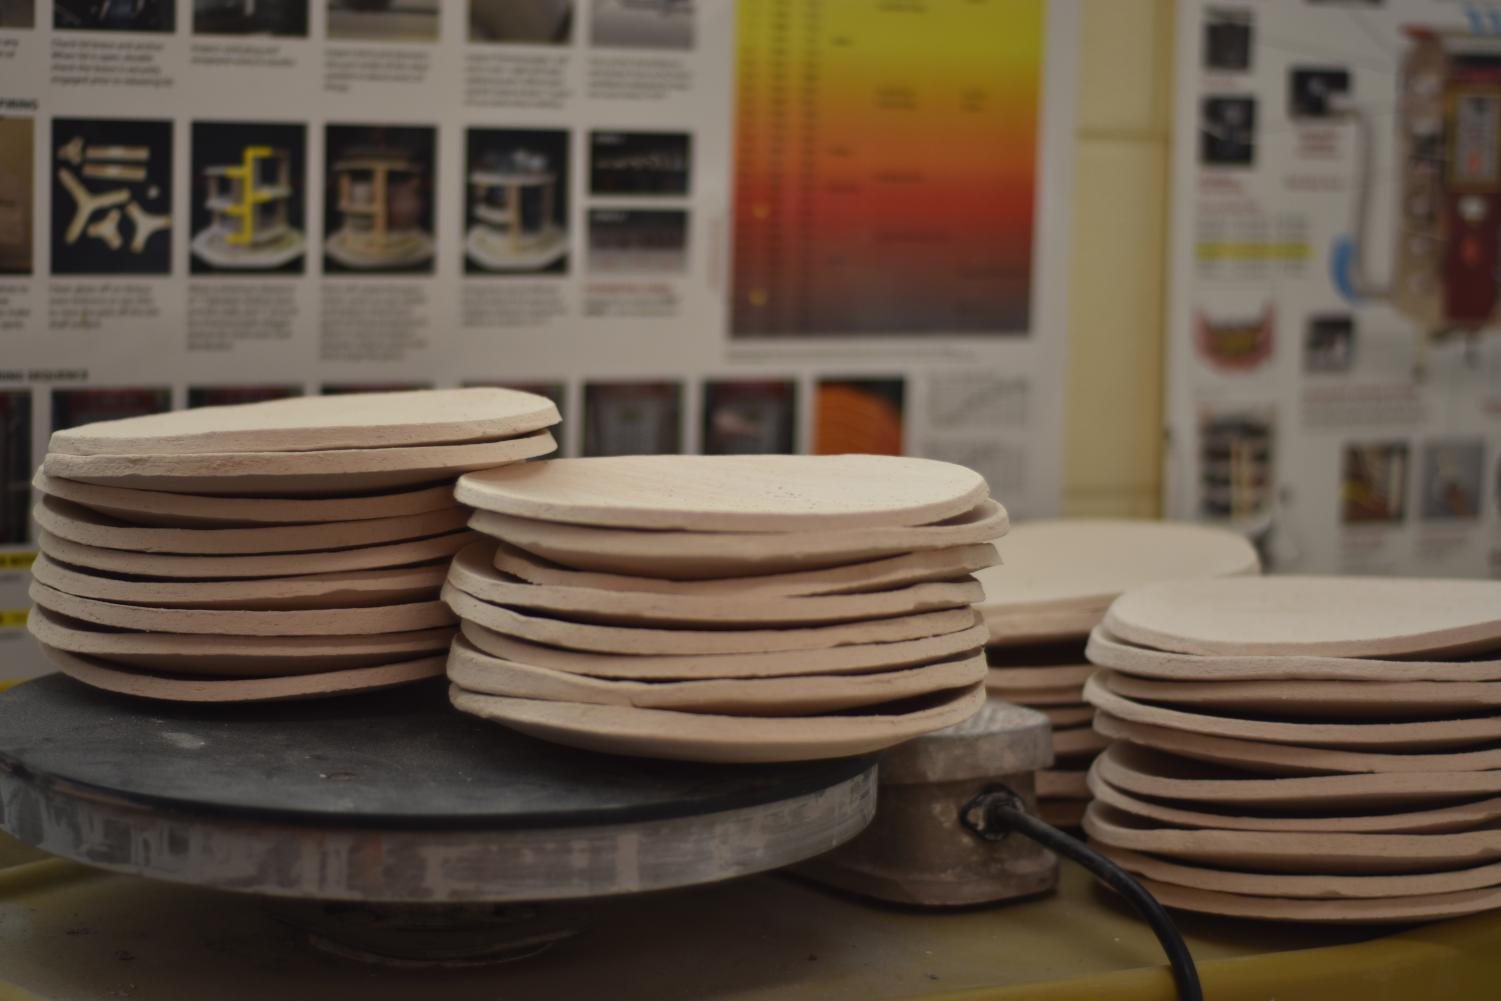 Stacks of bisque plates created by Mrs.Cooke and her daughter are ready for the Art Night